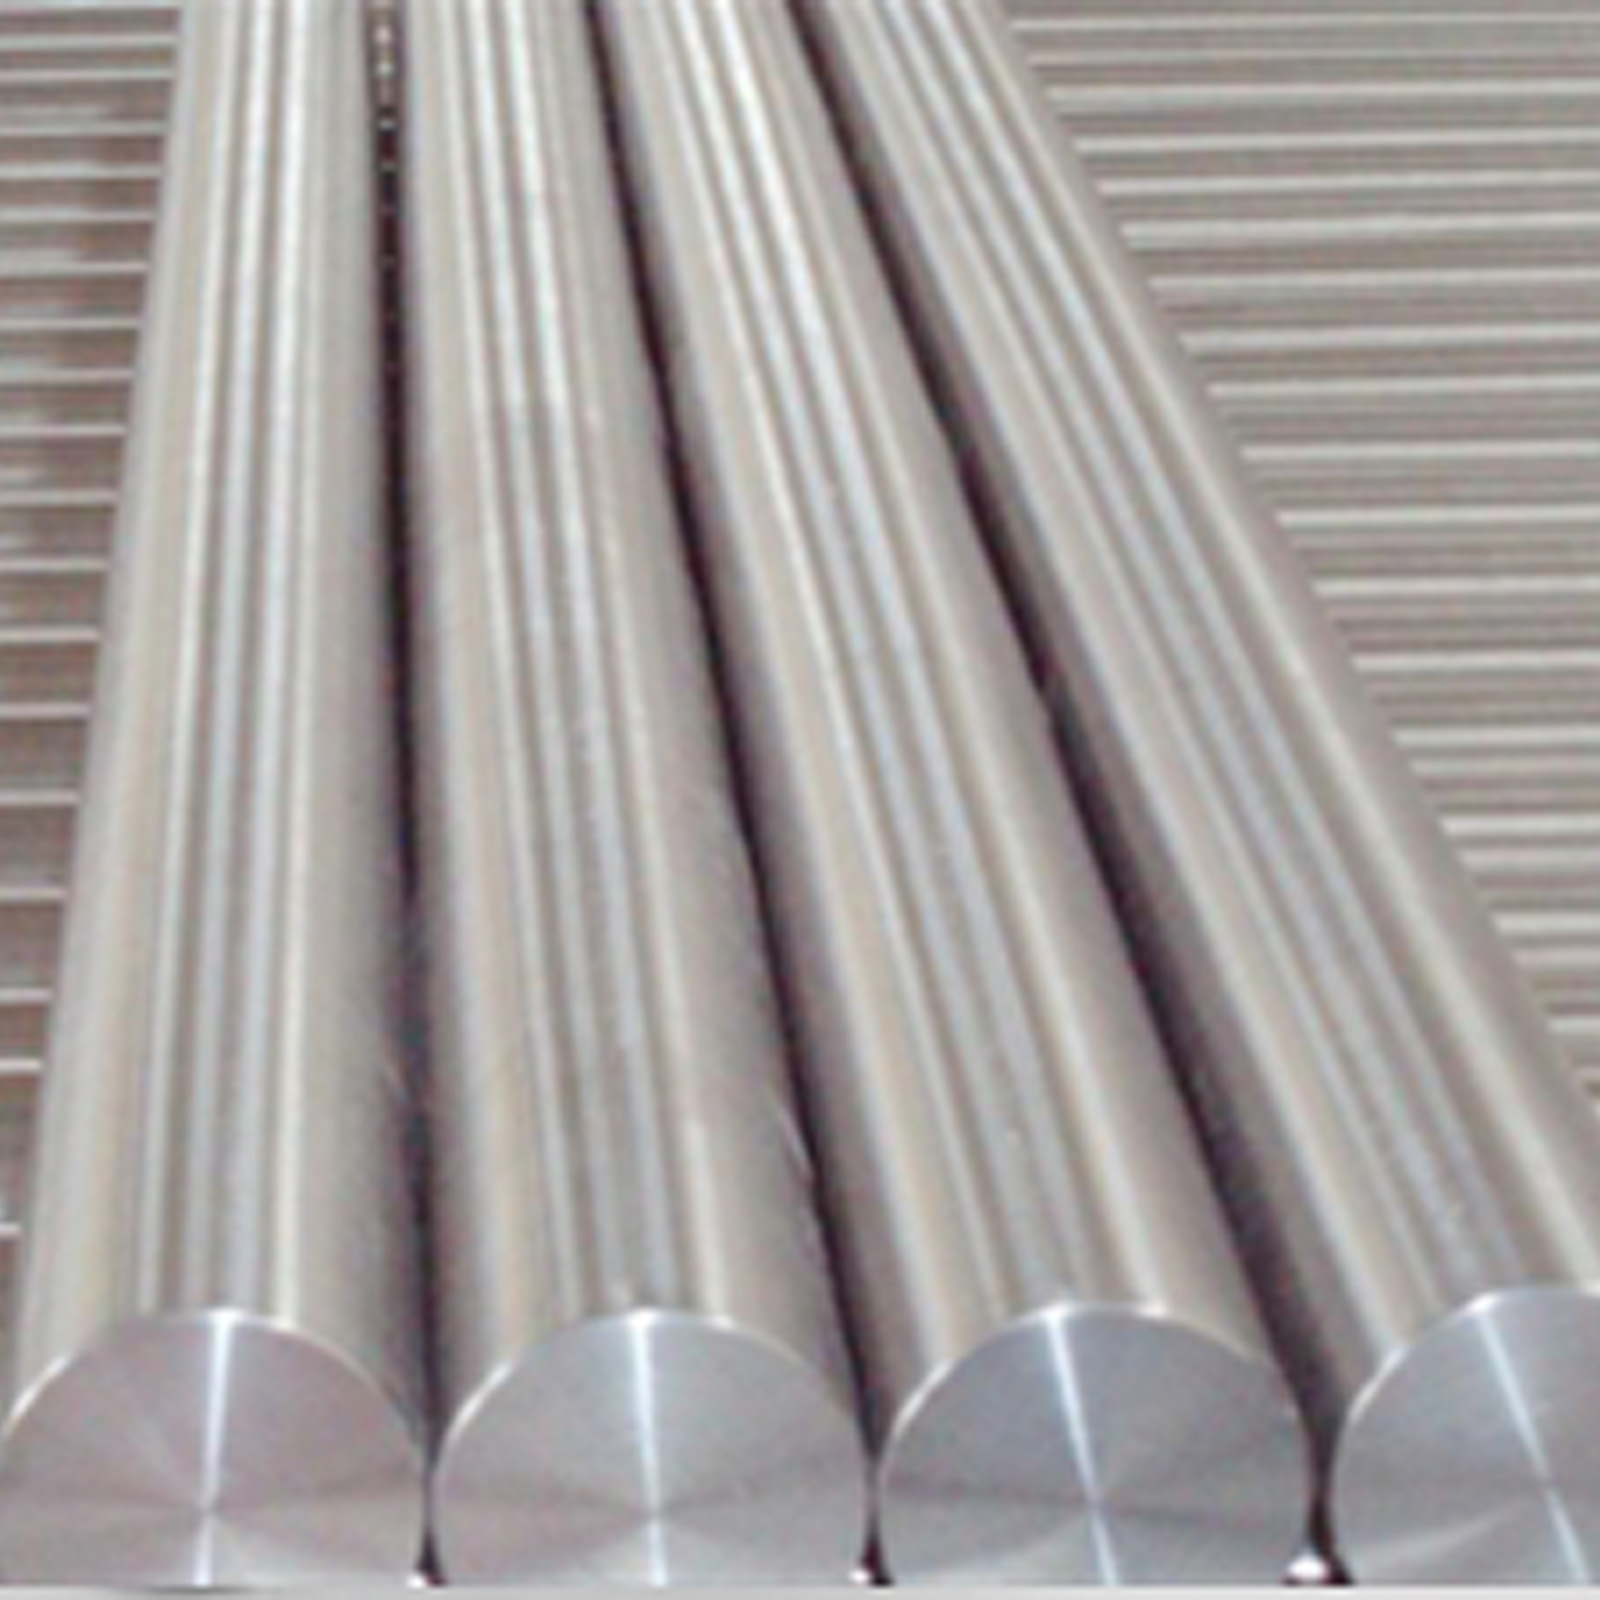 TC4 GR5 Titanium Alloy Rod Ti Metal Round Bar Shaft 100-500mm Long Dia 6mm-38mm